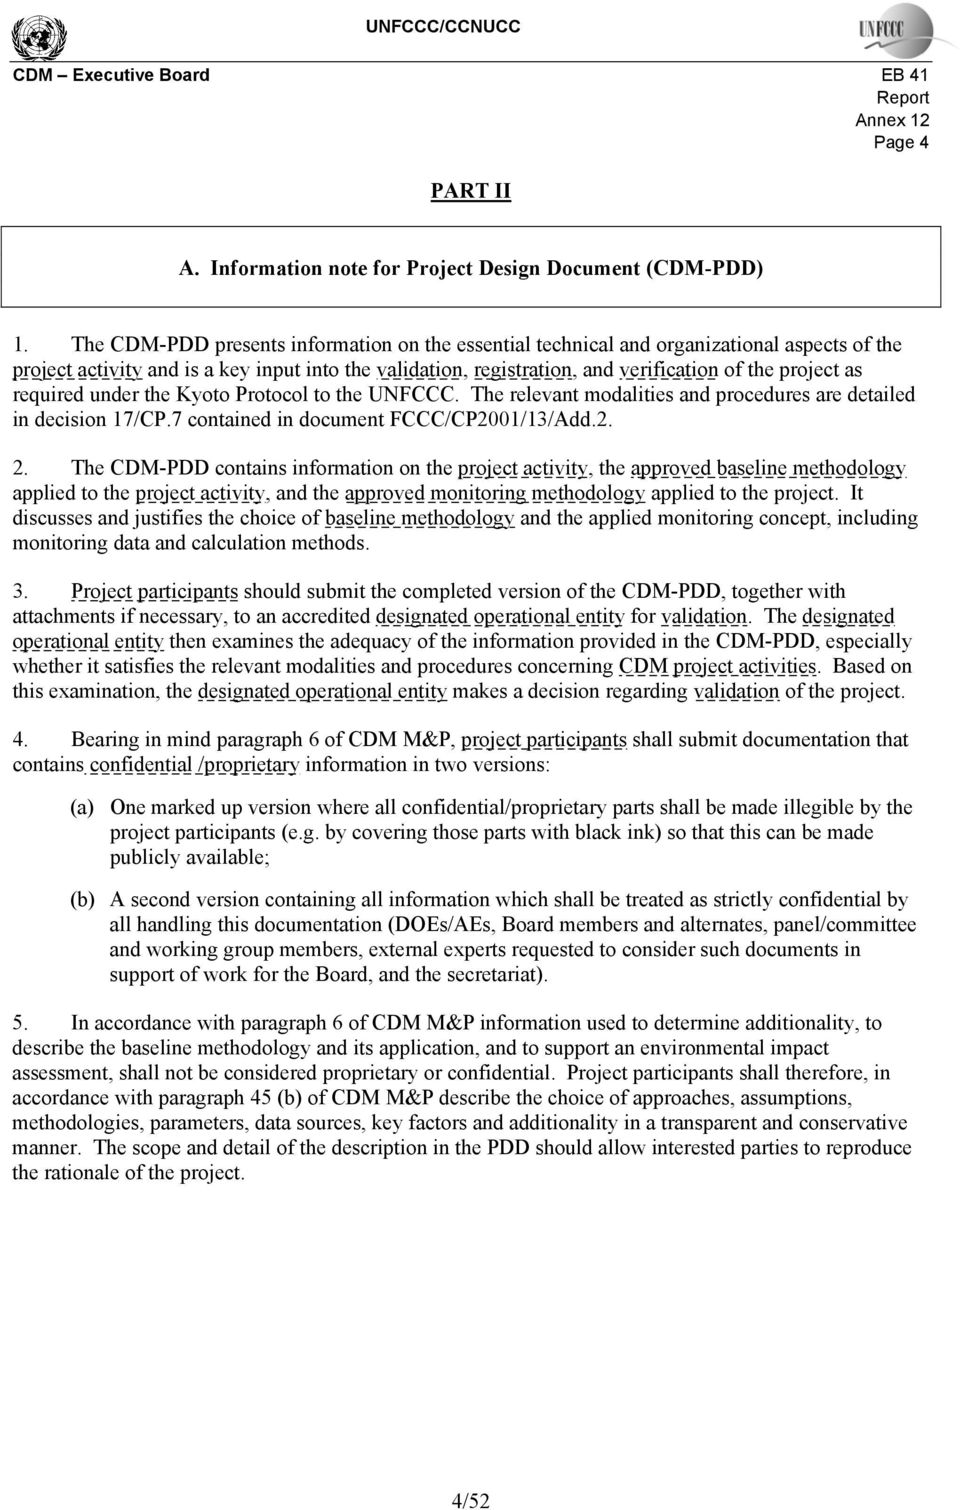 required under the Kyoto Protocol to the UNFCCC. The relevant modalities and procedures are detailed in decision 17/CP.7 contained in document FCCC/CP2001/13/Add.2. 2.